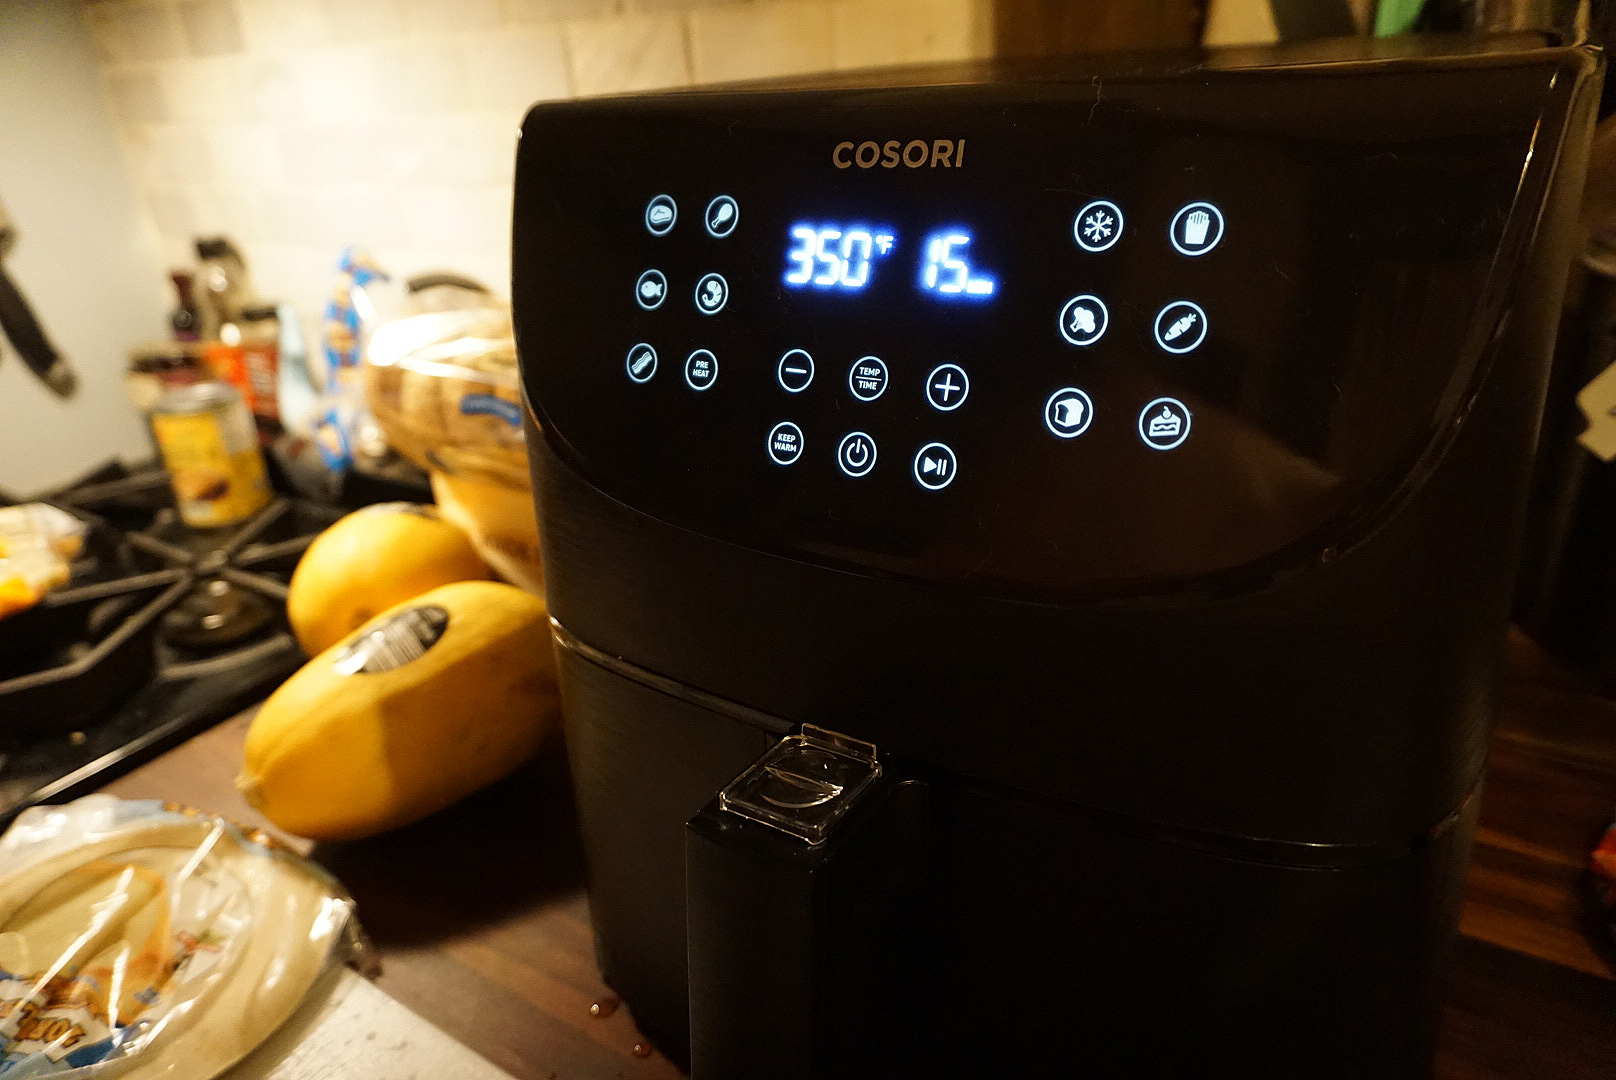 COSORI Air Fryer(100 Recipes),5.8Qt Electric Hot Air Fryers Oven Oilless Cooker,11 Cooking Presets,Preheat&Shake Reminder,LED Digital Touchscreen,Nonstick Basket,ETL/UL Certified,2-Year Warranty,1700W, tiny house, tiny kitchen, tiny stove, tiny oven, tiny home, compact kitchen